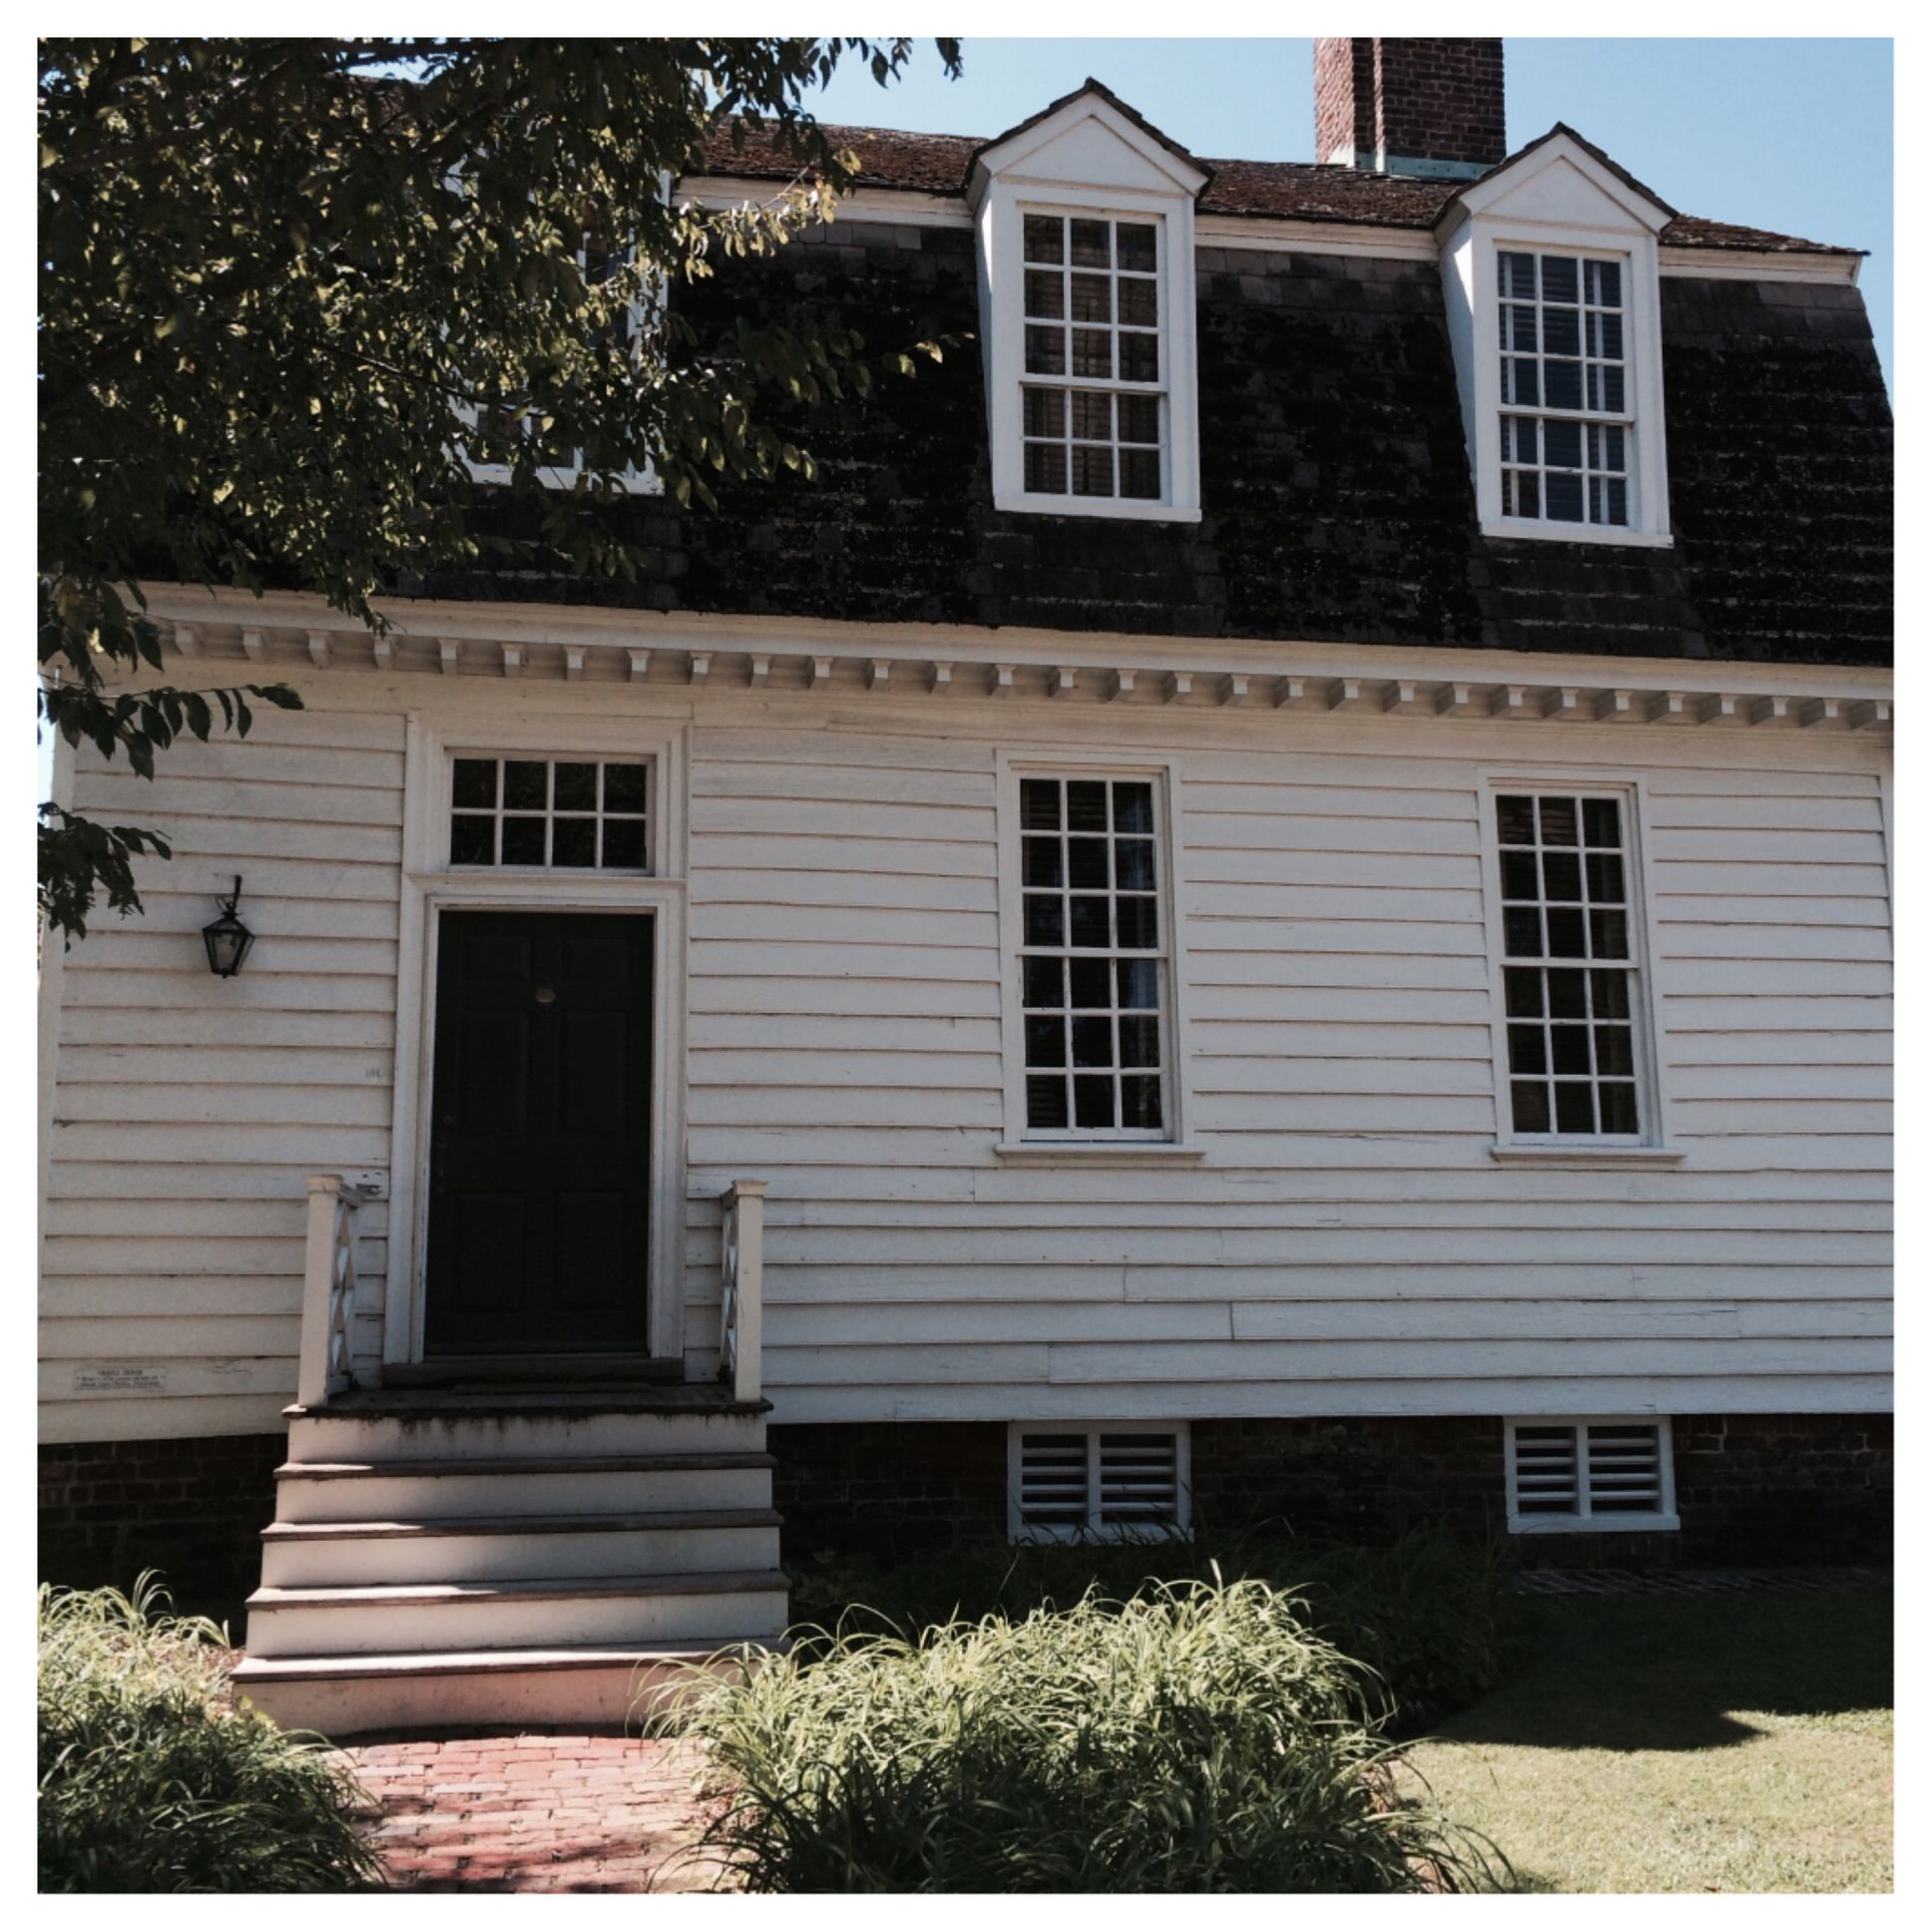 Authentic Colonial Houses In Colonial Williamsburg Va Colonial Williamsburg Colonial Williamsburg Va Colonial